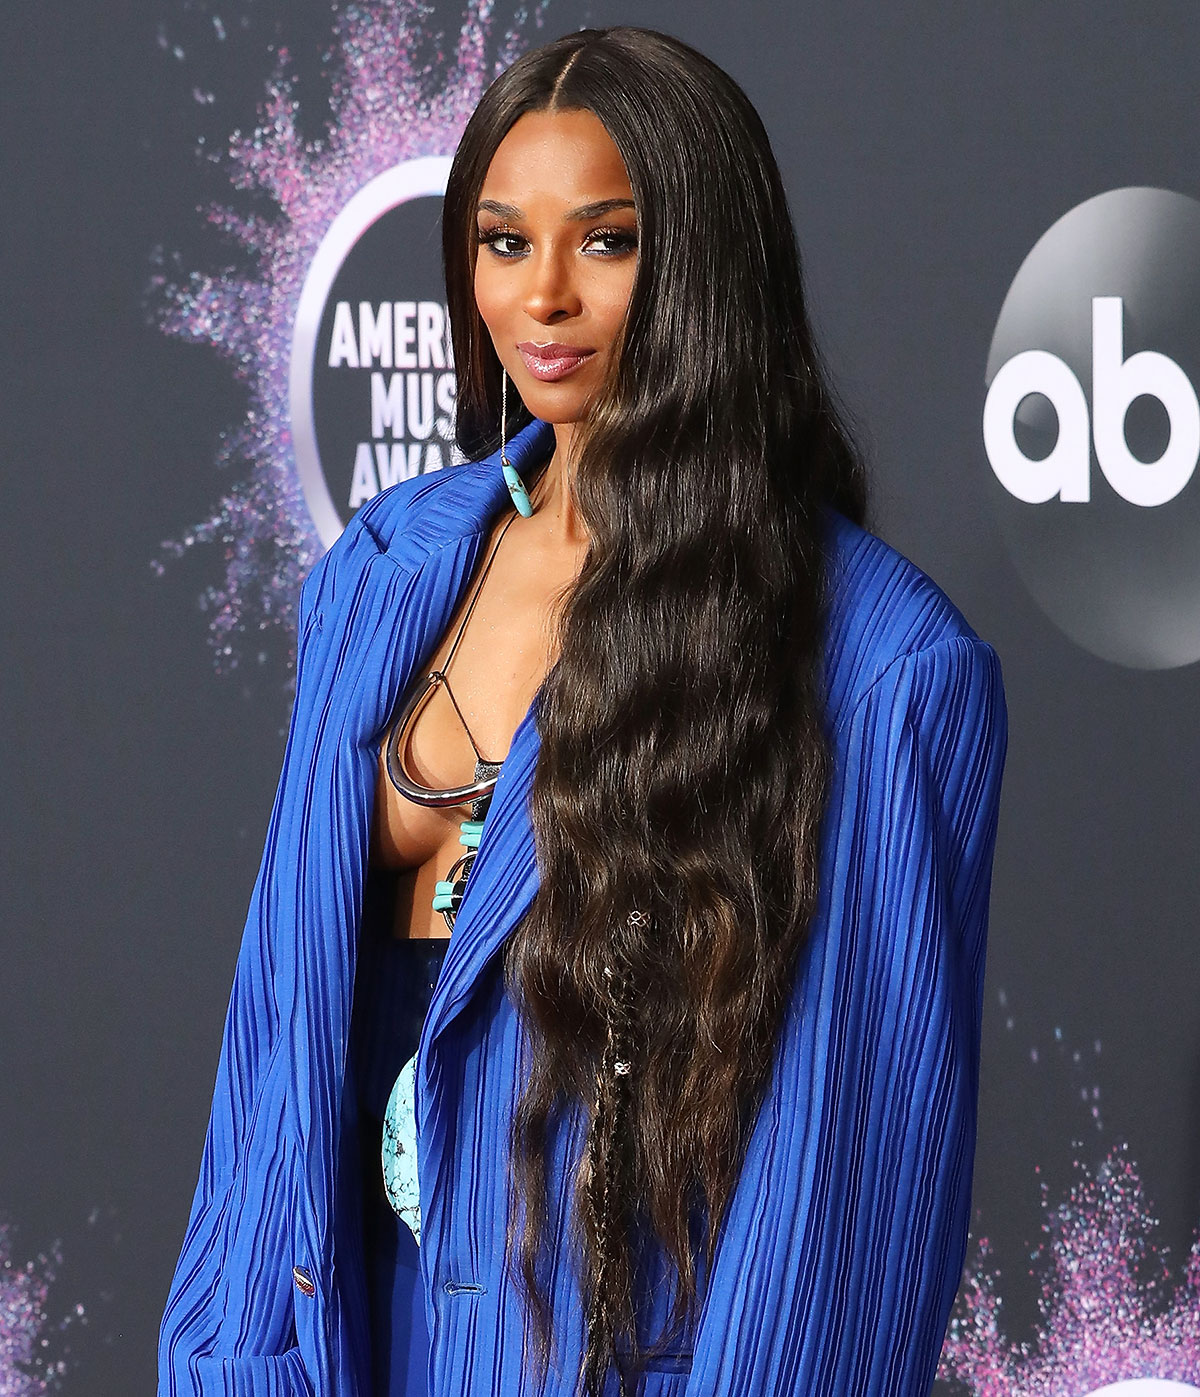 LOS ANGELES, CALIFORNIA - NOVEMBER 24: Ciara during the 2019 American Music Awards at Microsoft Theater on November 24, 2019 in Los Angeles, California.